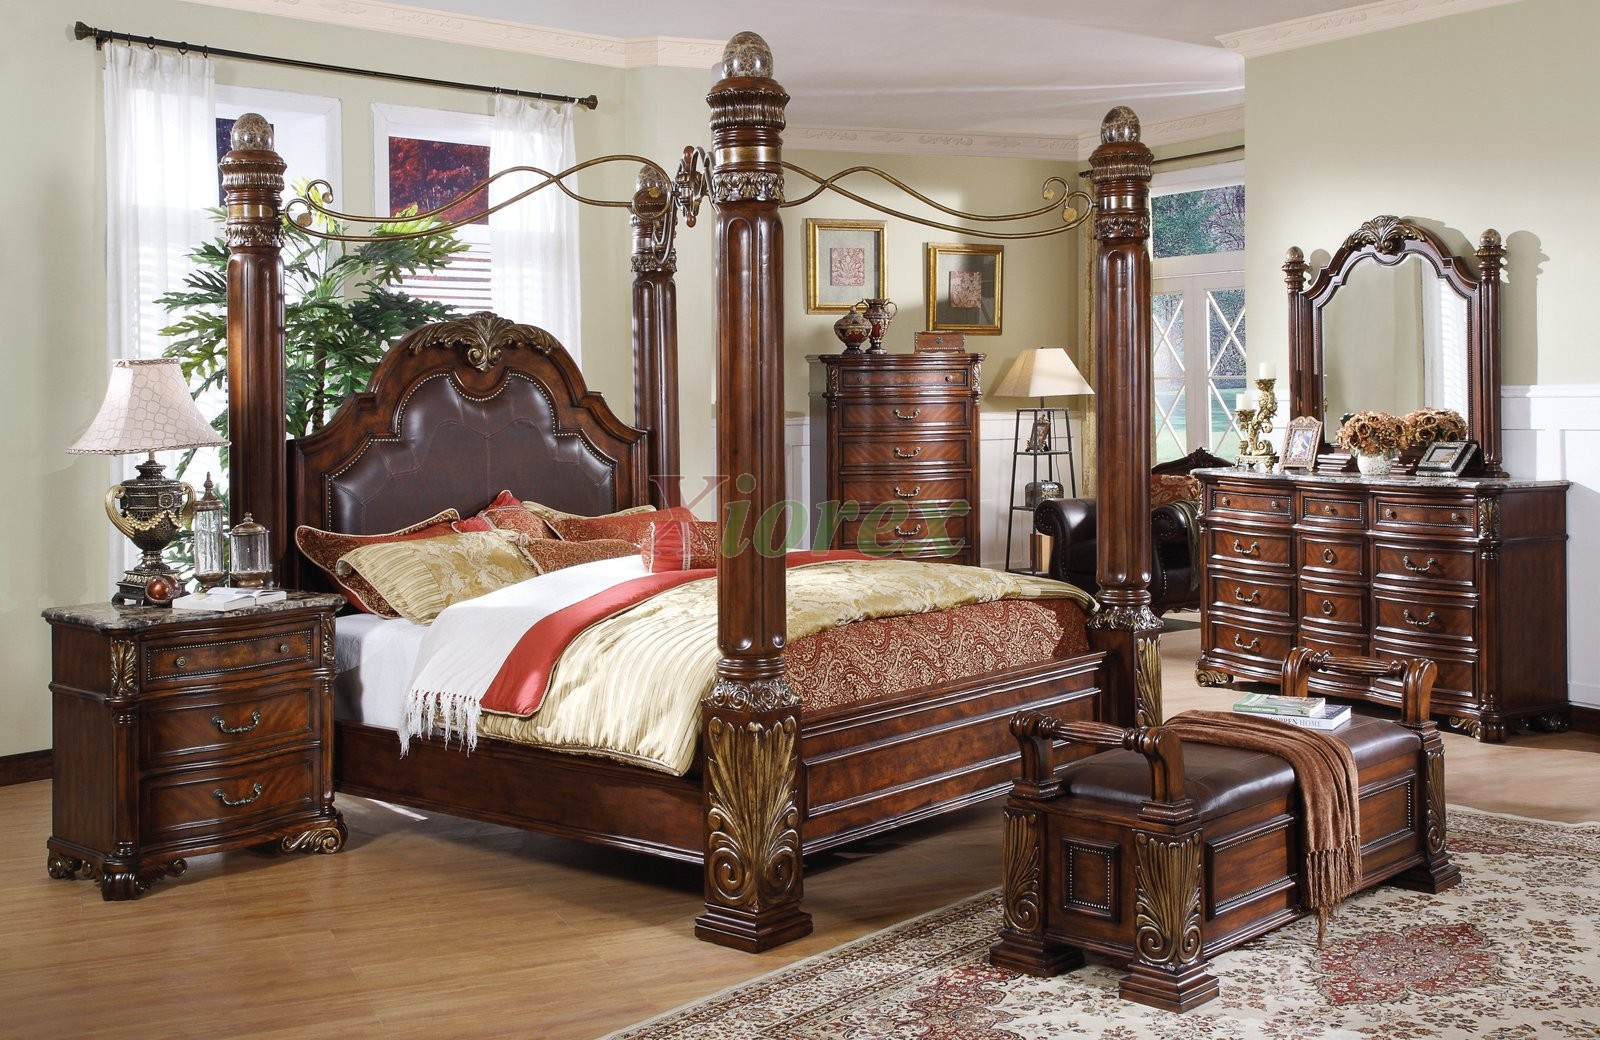 Fabulous King Canopy Bedroom Sets Furniture 1600 x 1040 · 477 kB · jpeg